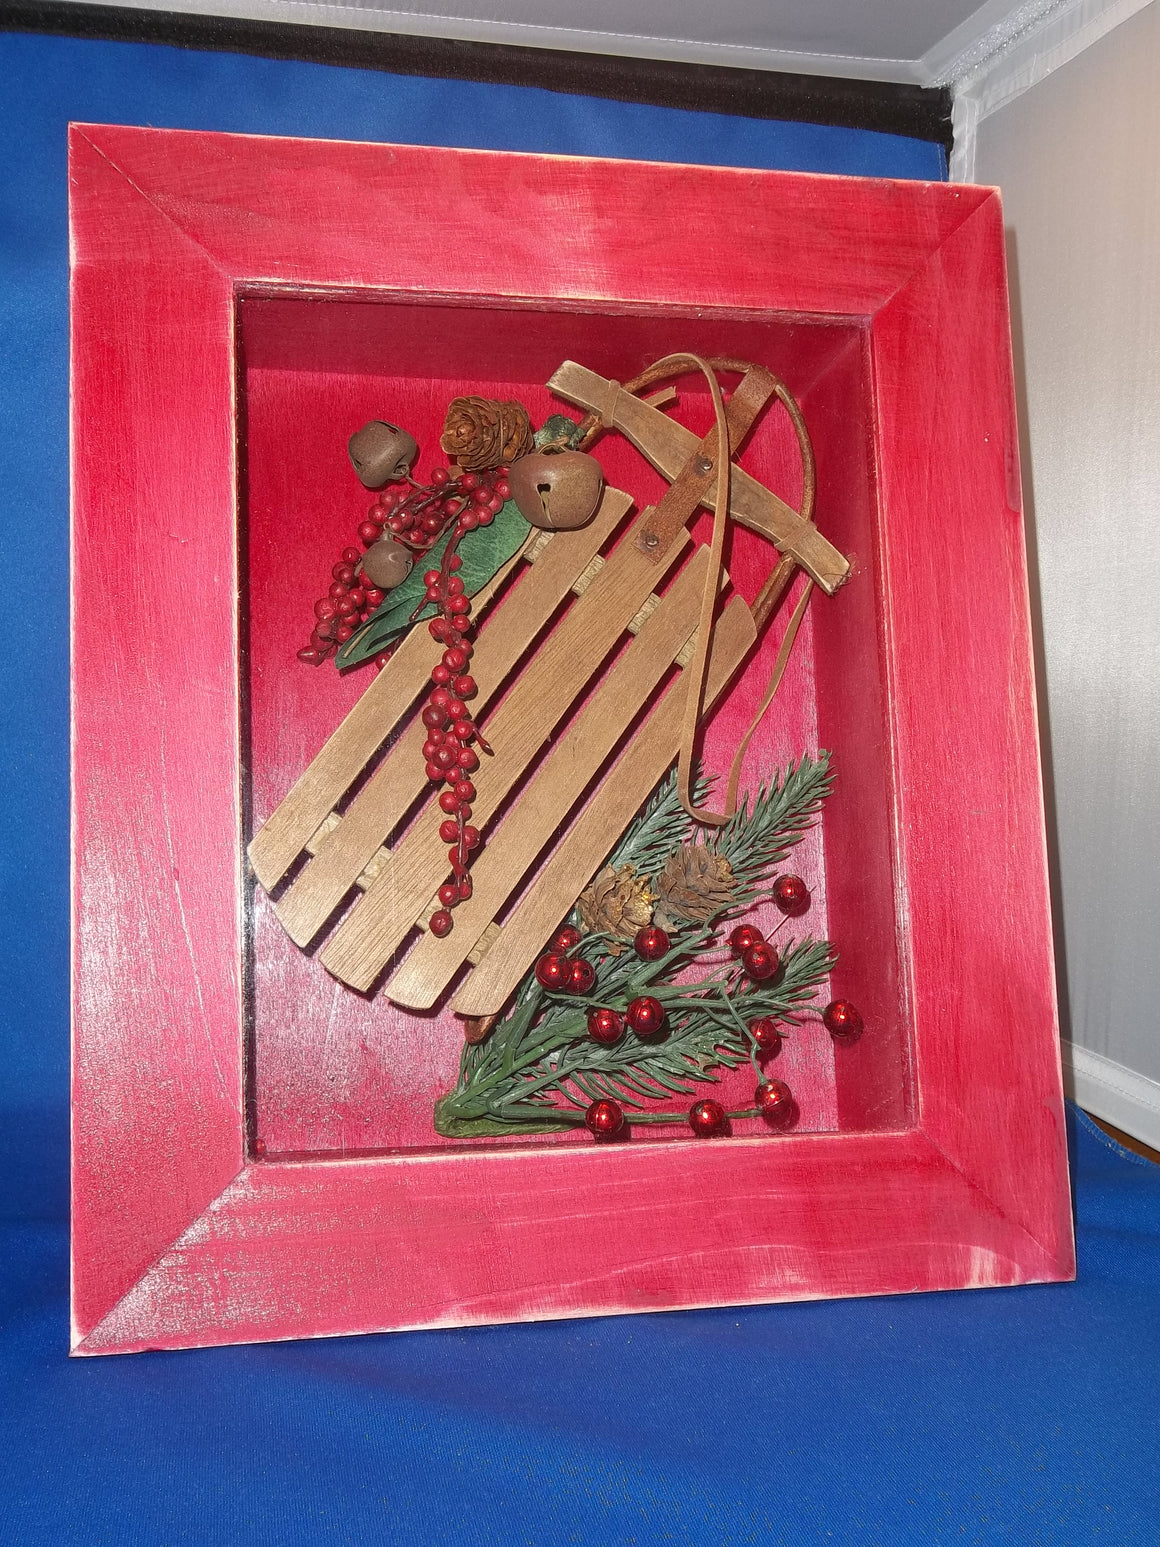 Shadow Box - Framed Red Box with Sled & Greenery (Handcrafted)